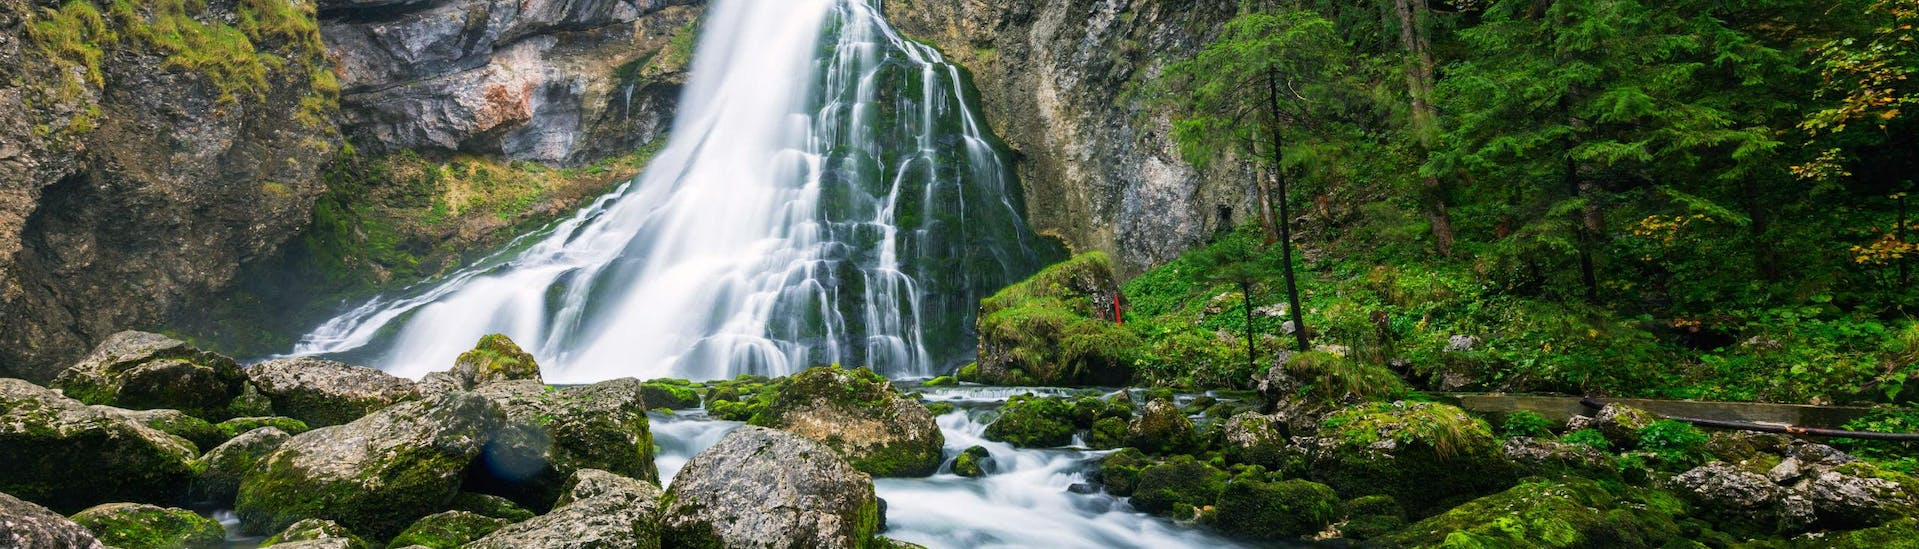 An image of the Gollinger Waterfall close to where providers offer tours to go rafting in Golling.